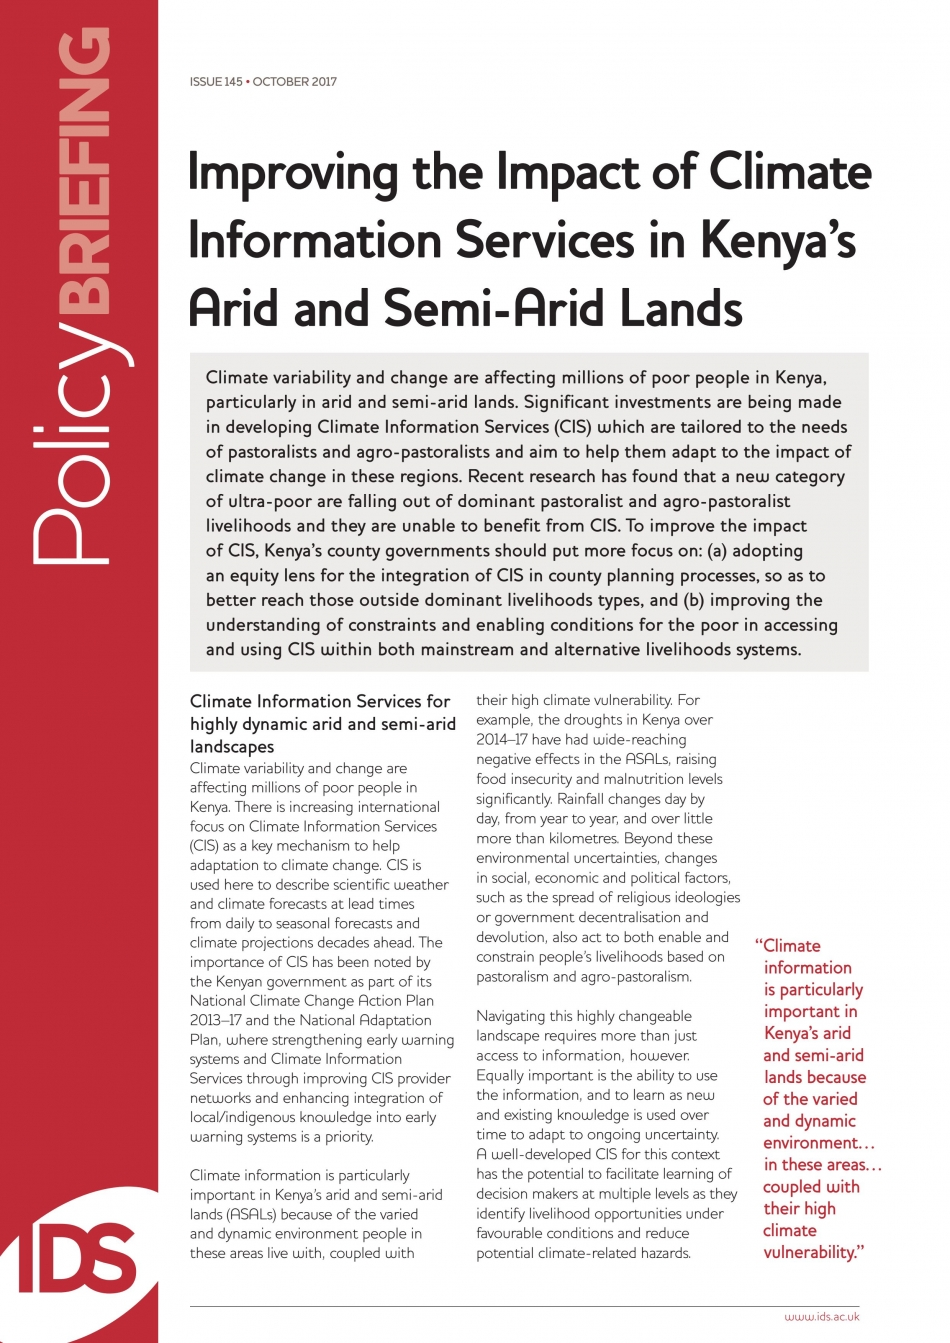 Improving the Impact of Climate Information Services in Kenya's Arid and Semi-Arid Lands